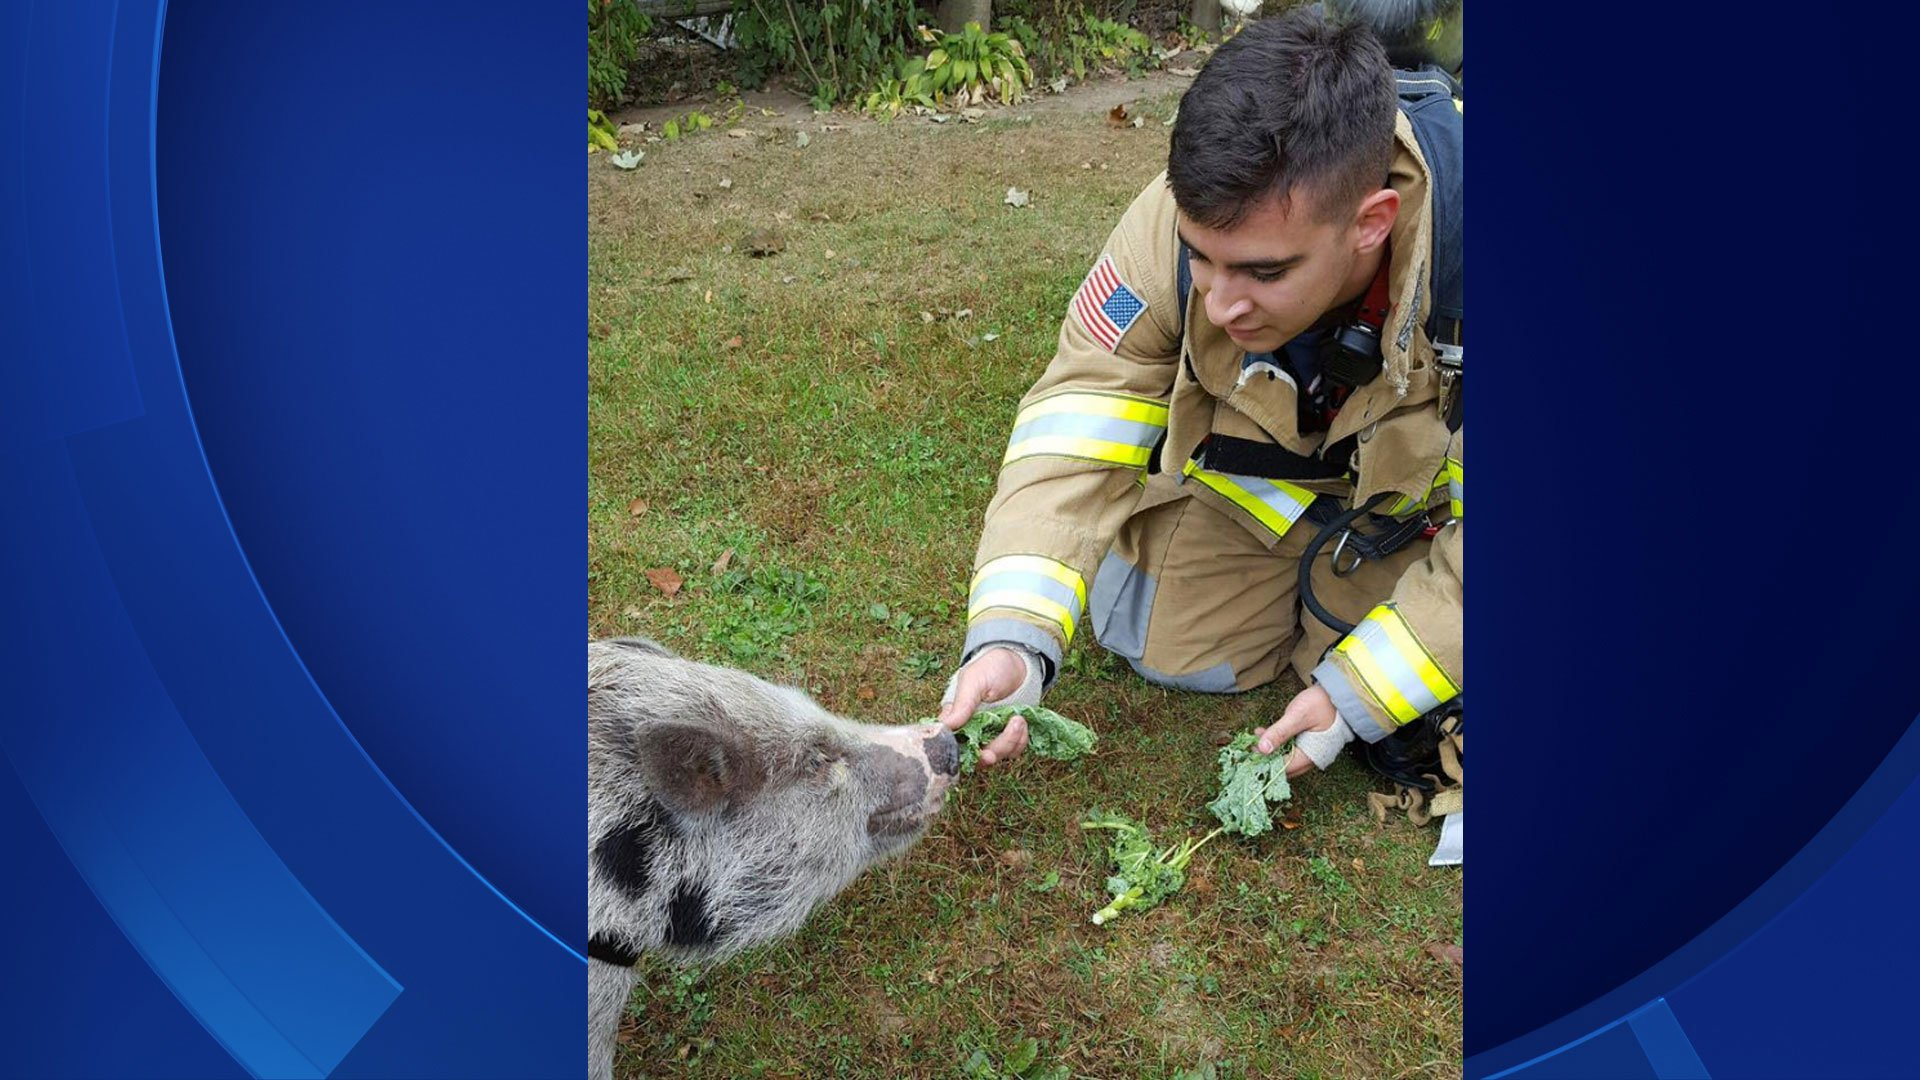 Firefighters befriend a pig during a CO call. (Trumbull Volunteer Fire Company Facebook/WFSB)